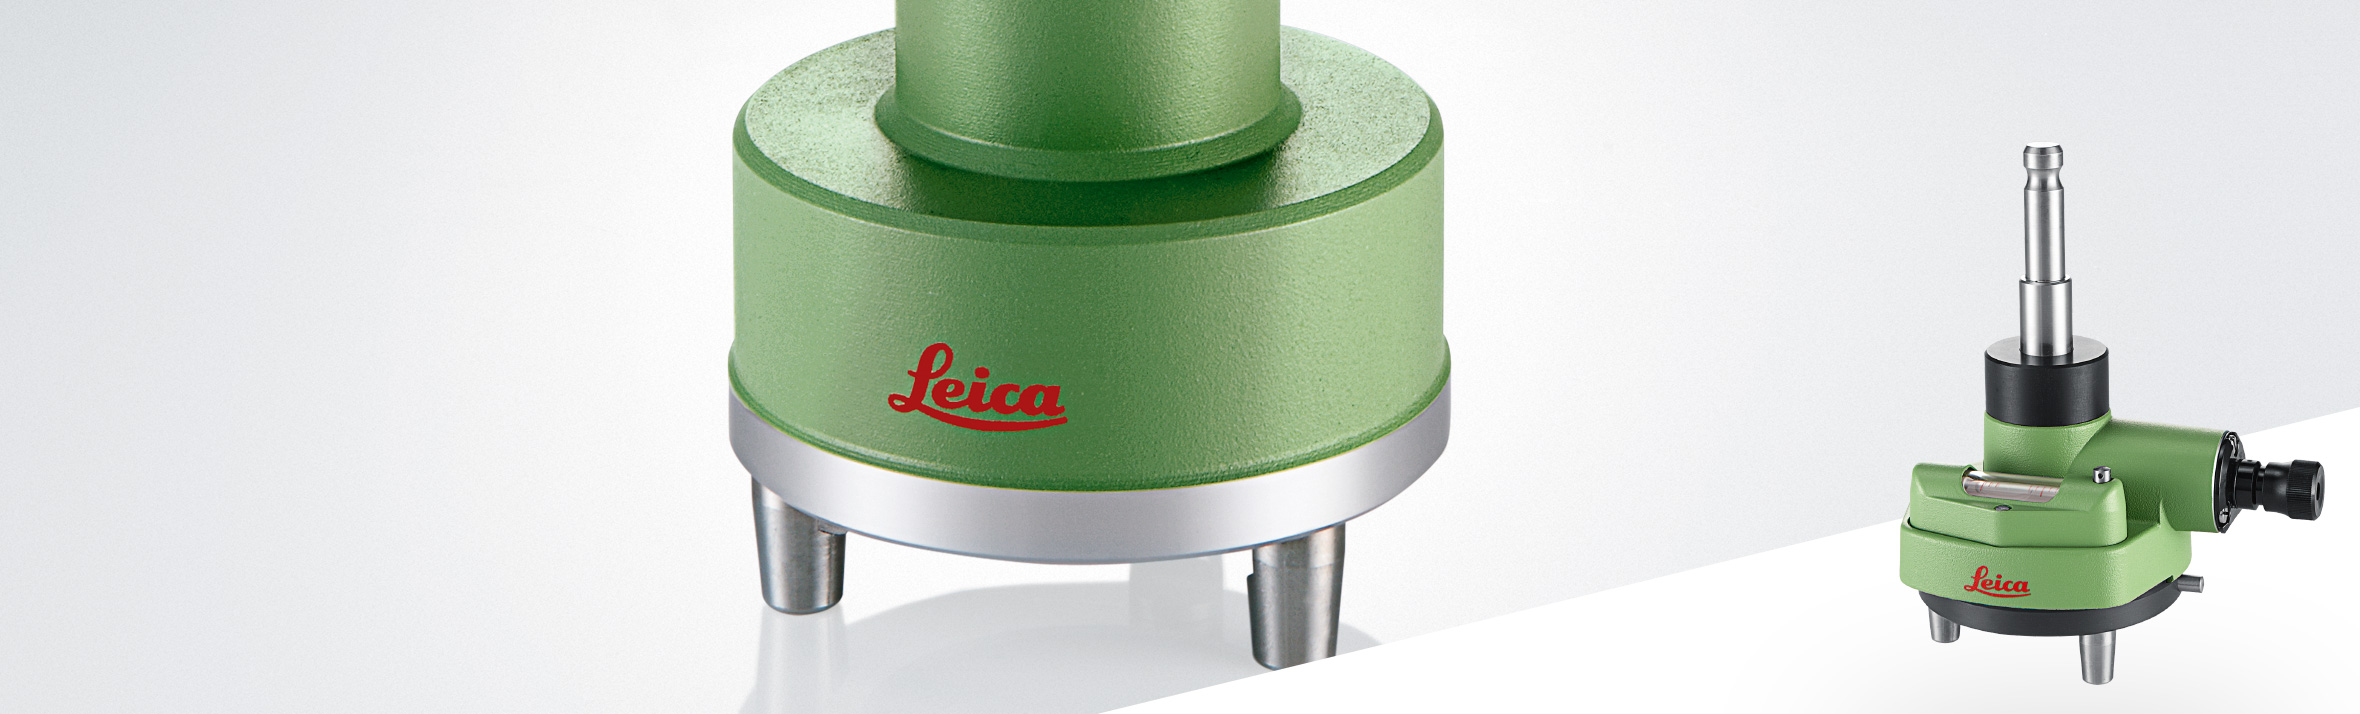 Leica Geosystems bærere